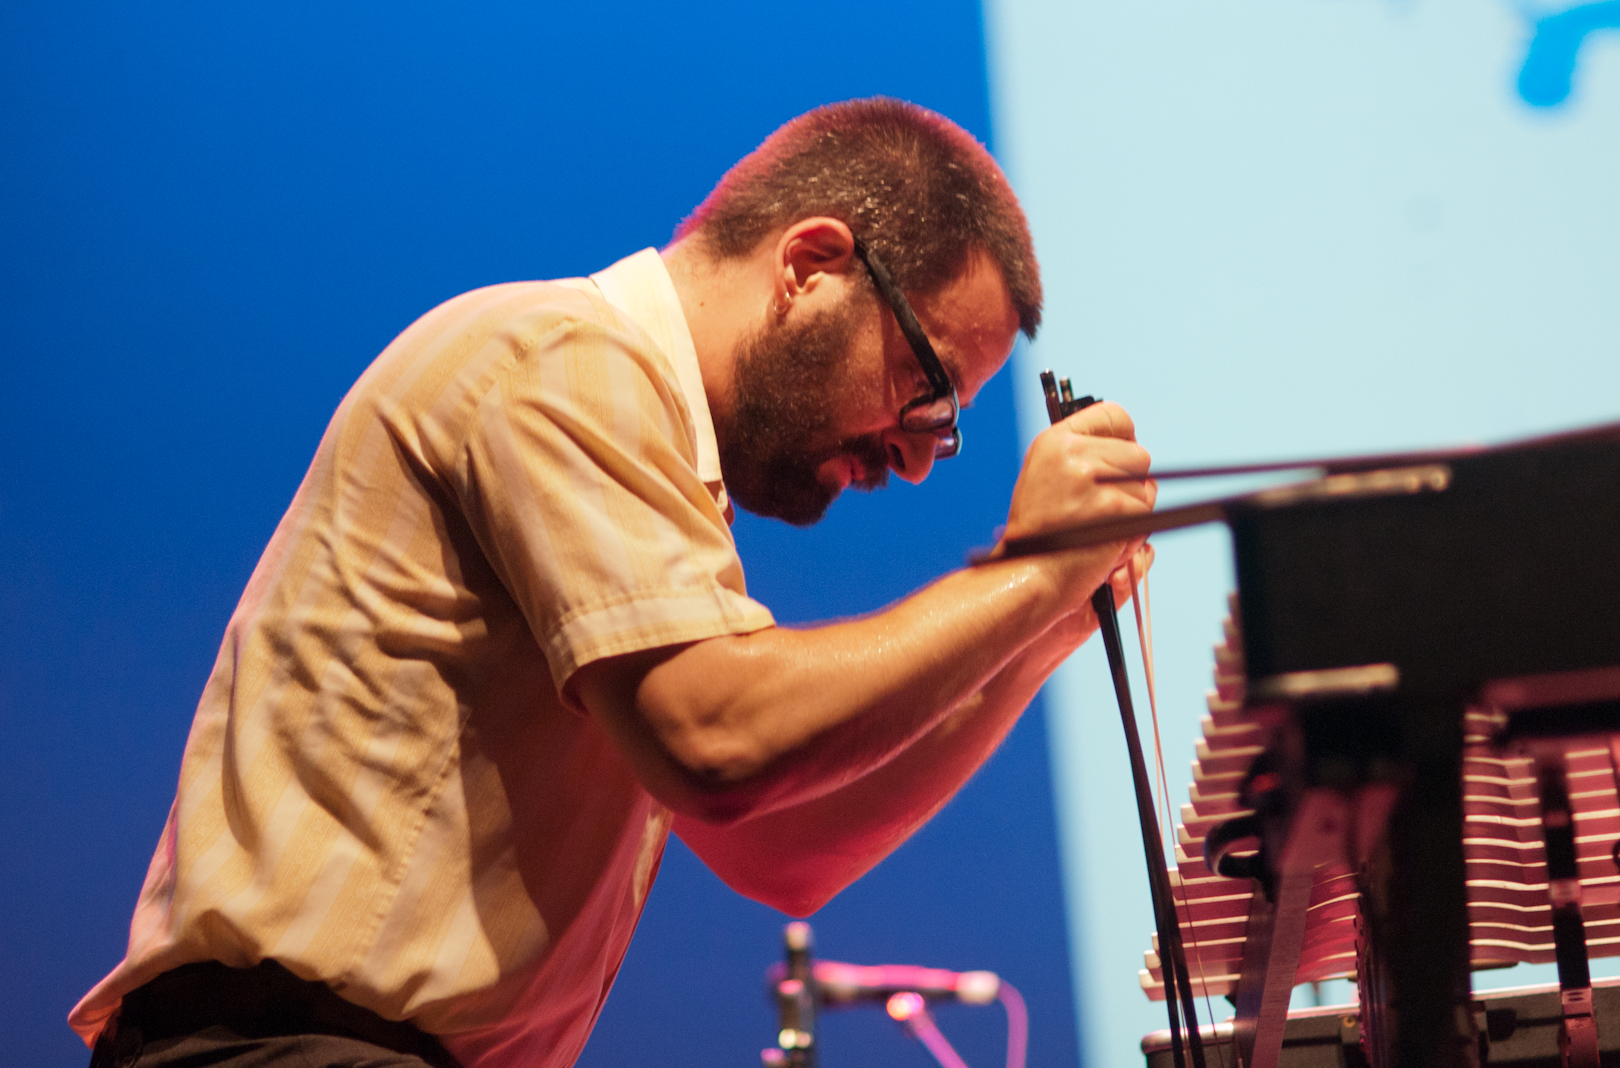 Jason Adasiewicz in Duet with Peter Brotzman at the Vision Festival 2011